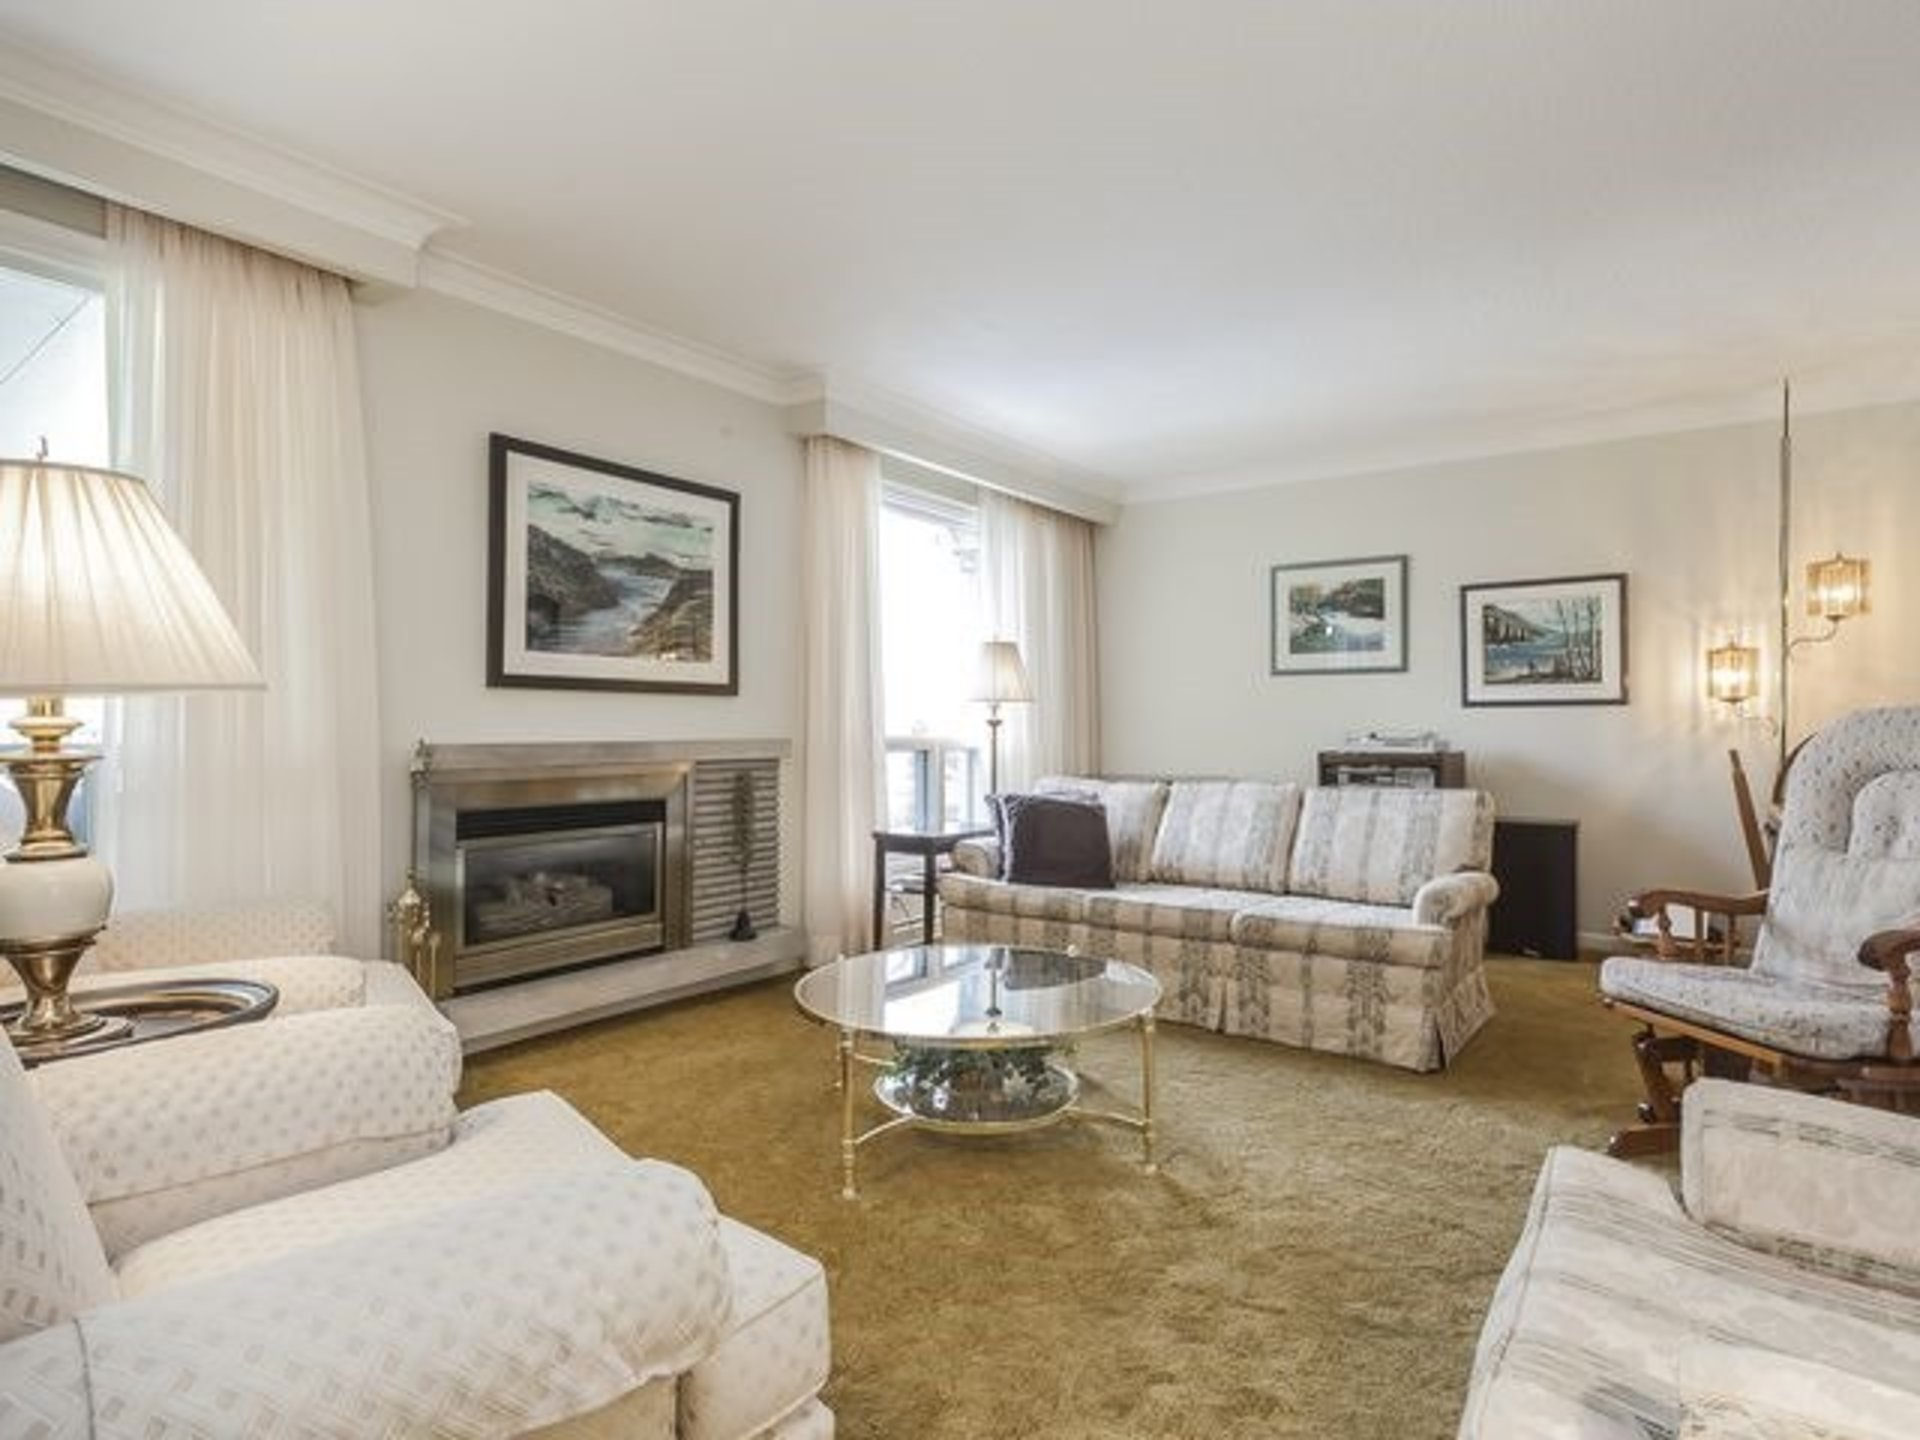 22 at SALE #456 - 46 Palomino Crescent, Bayview Village, Toronto